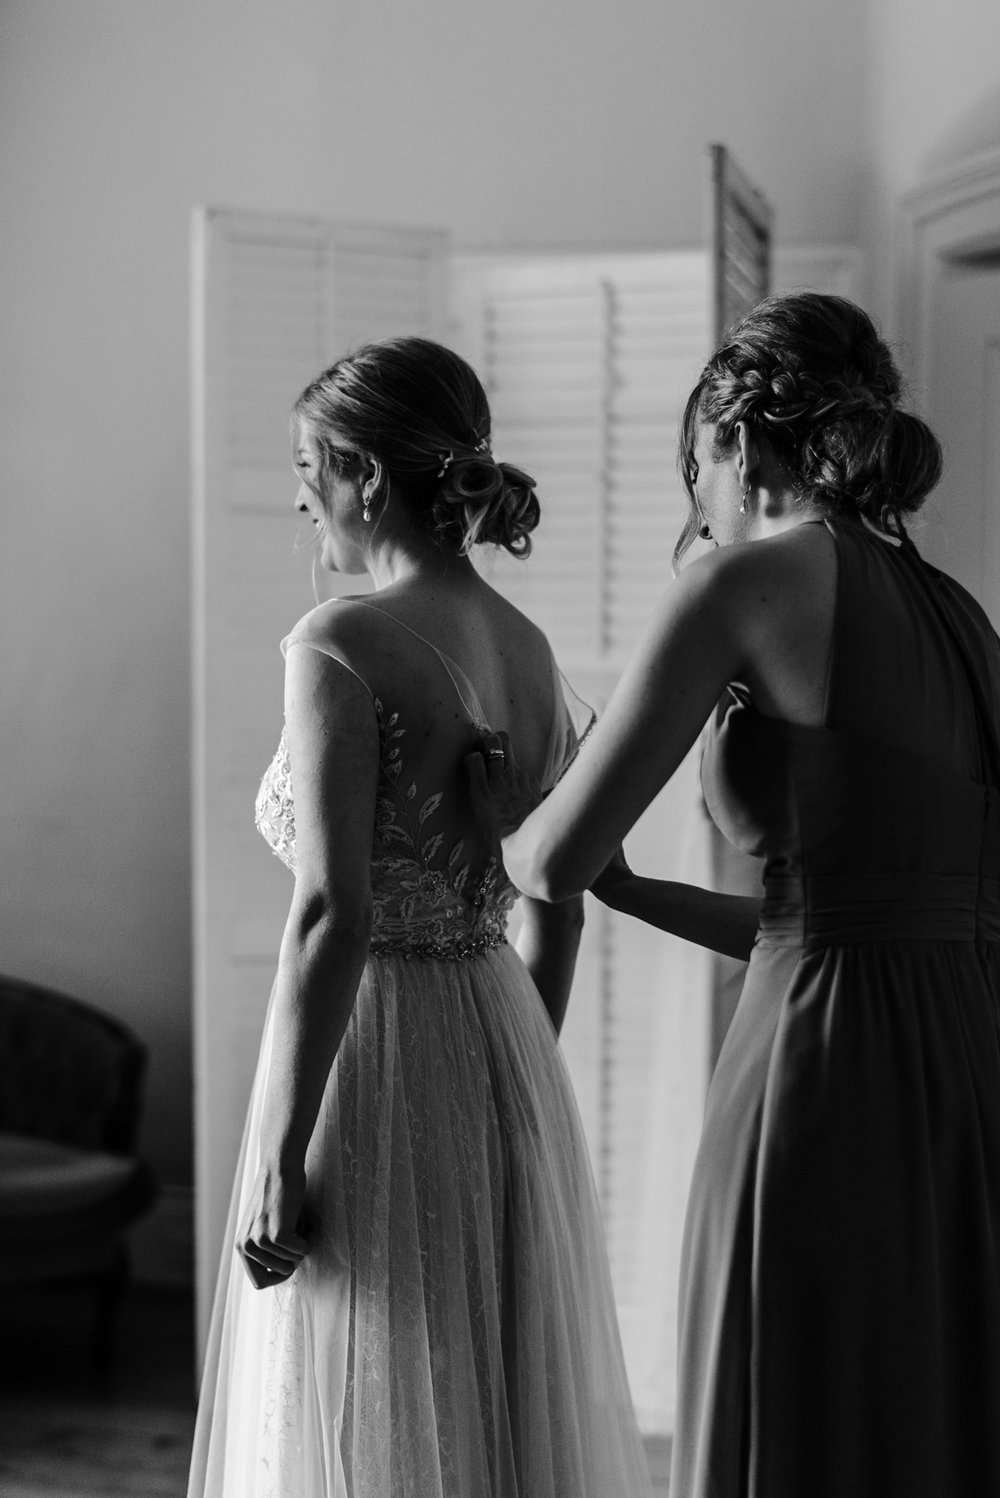 275-bride-getting-ready-elegant-tulle-wedding-dress.jpg